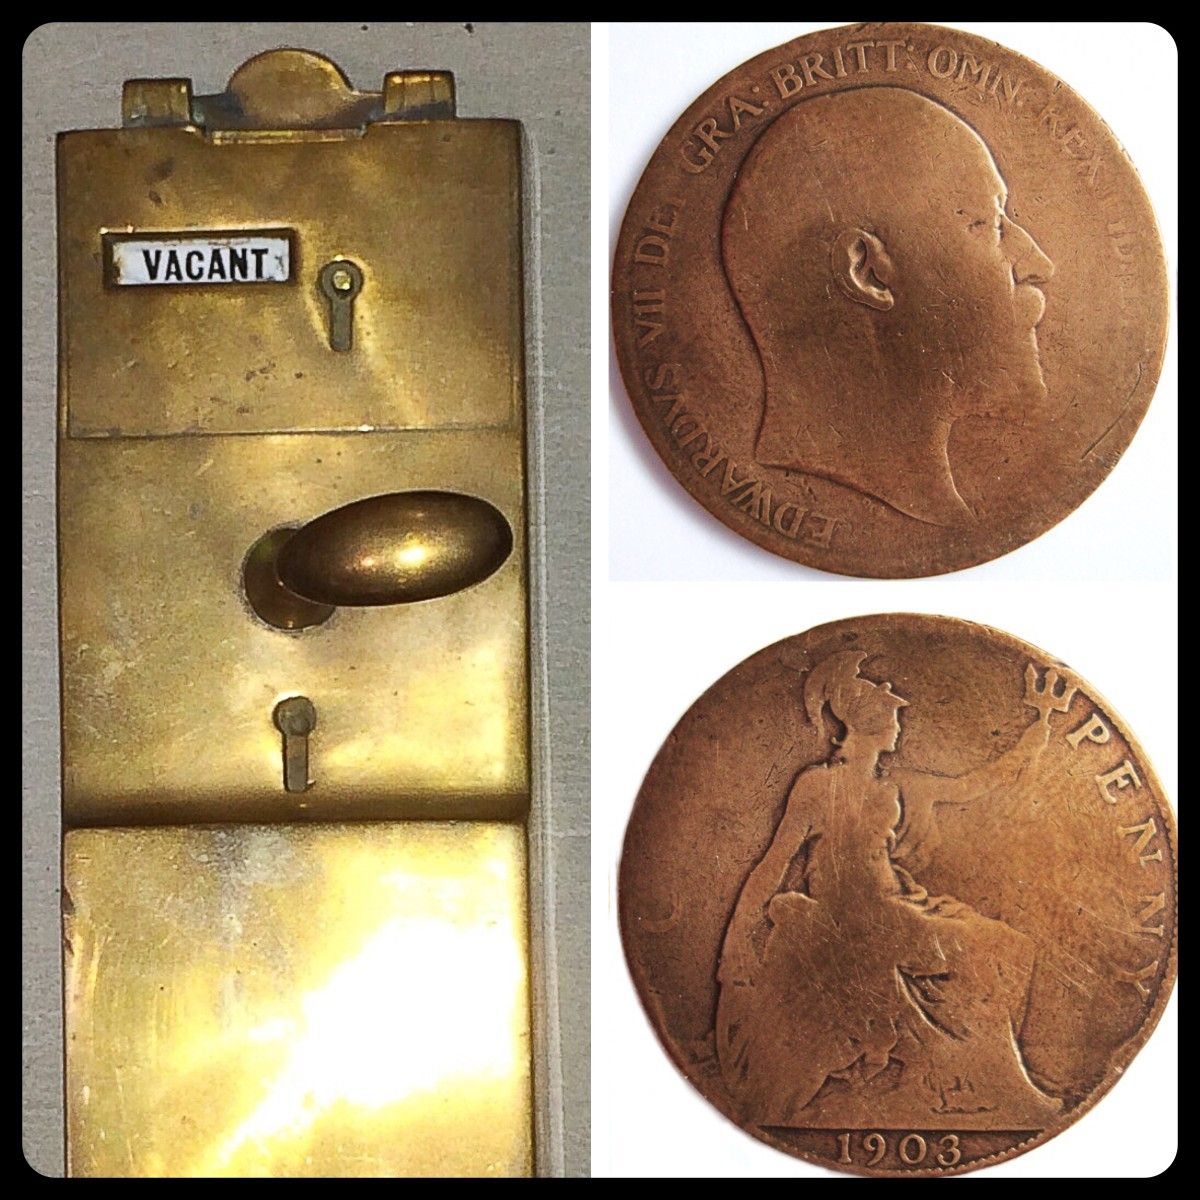 A penny-in-the-slot device from an old toilet plus the two sides of a 1903 penny